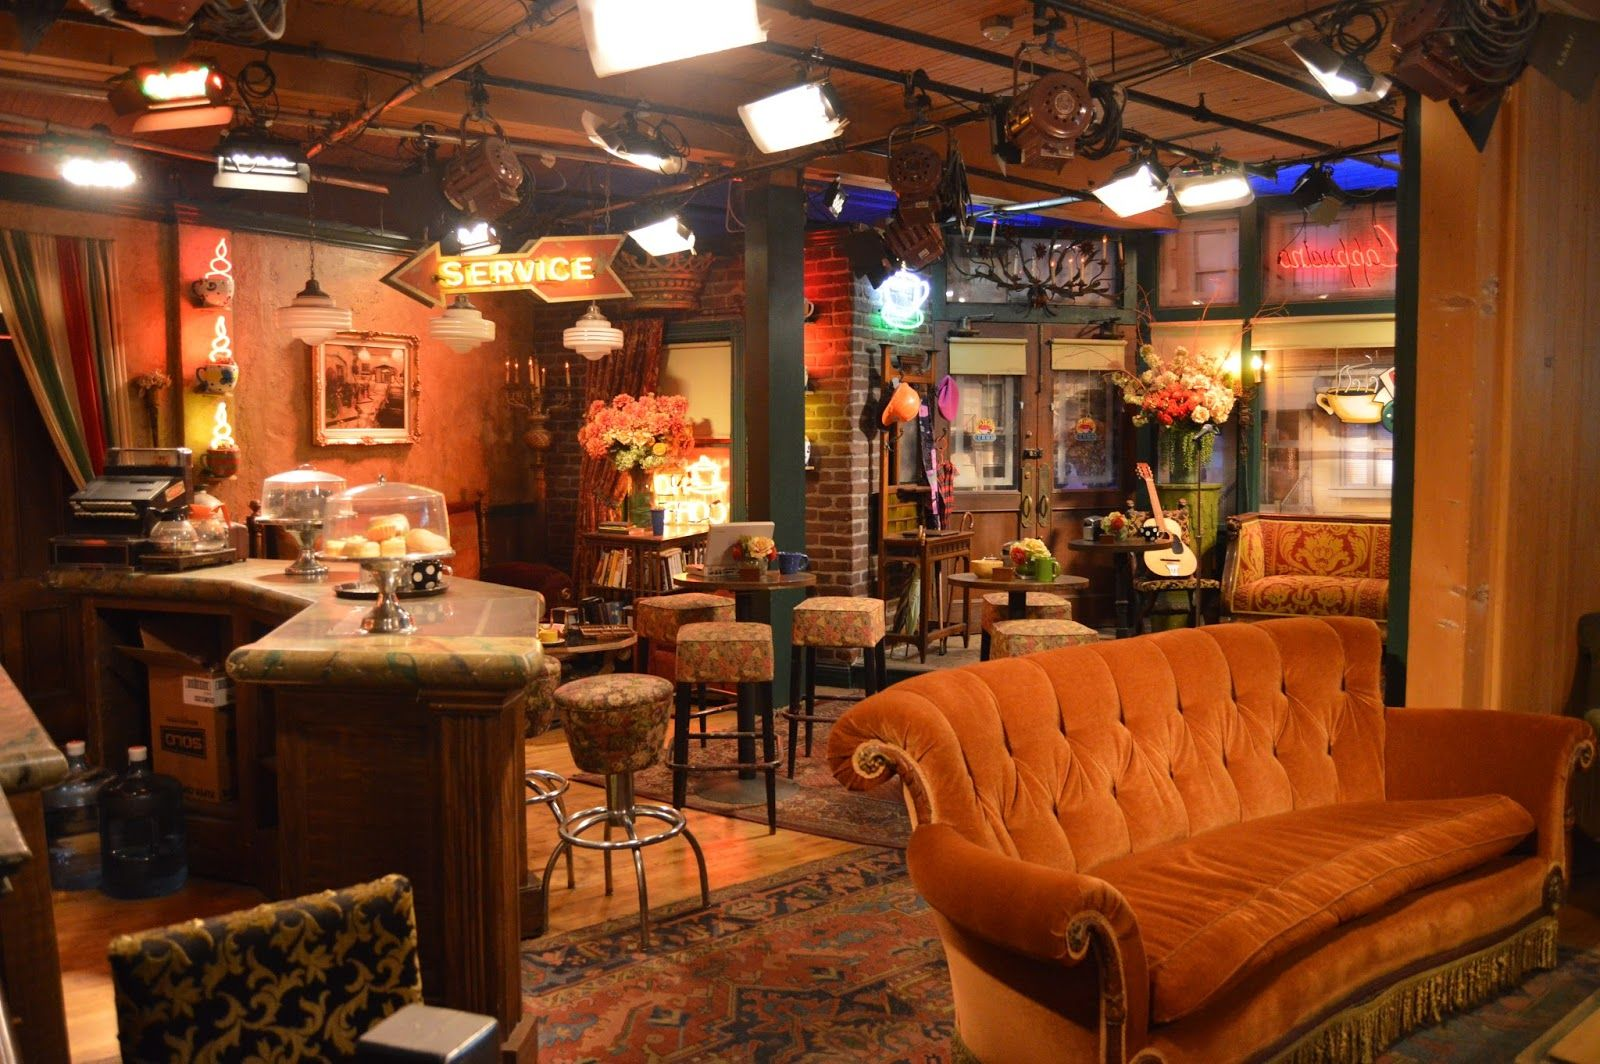 sofa from friends best bed sg central perk coffee shop 39friends 39